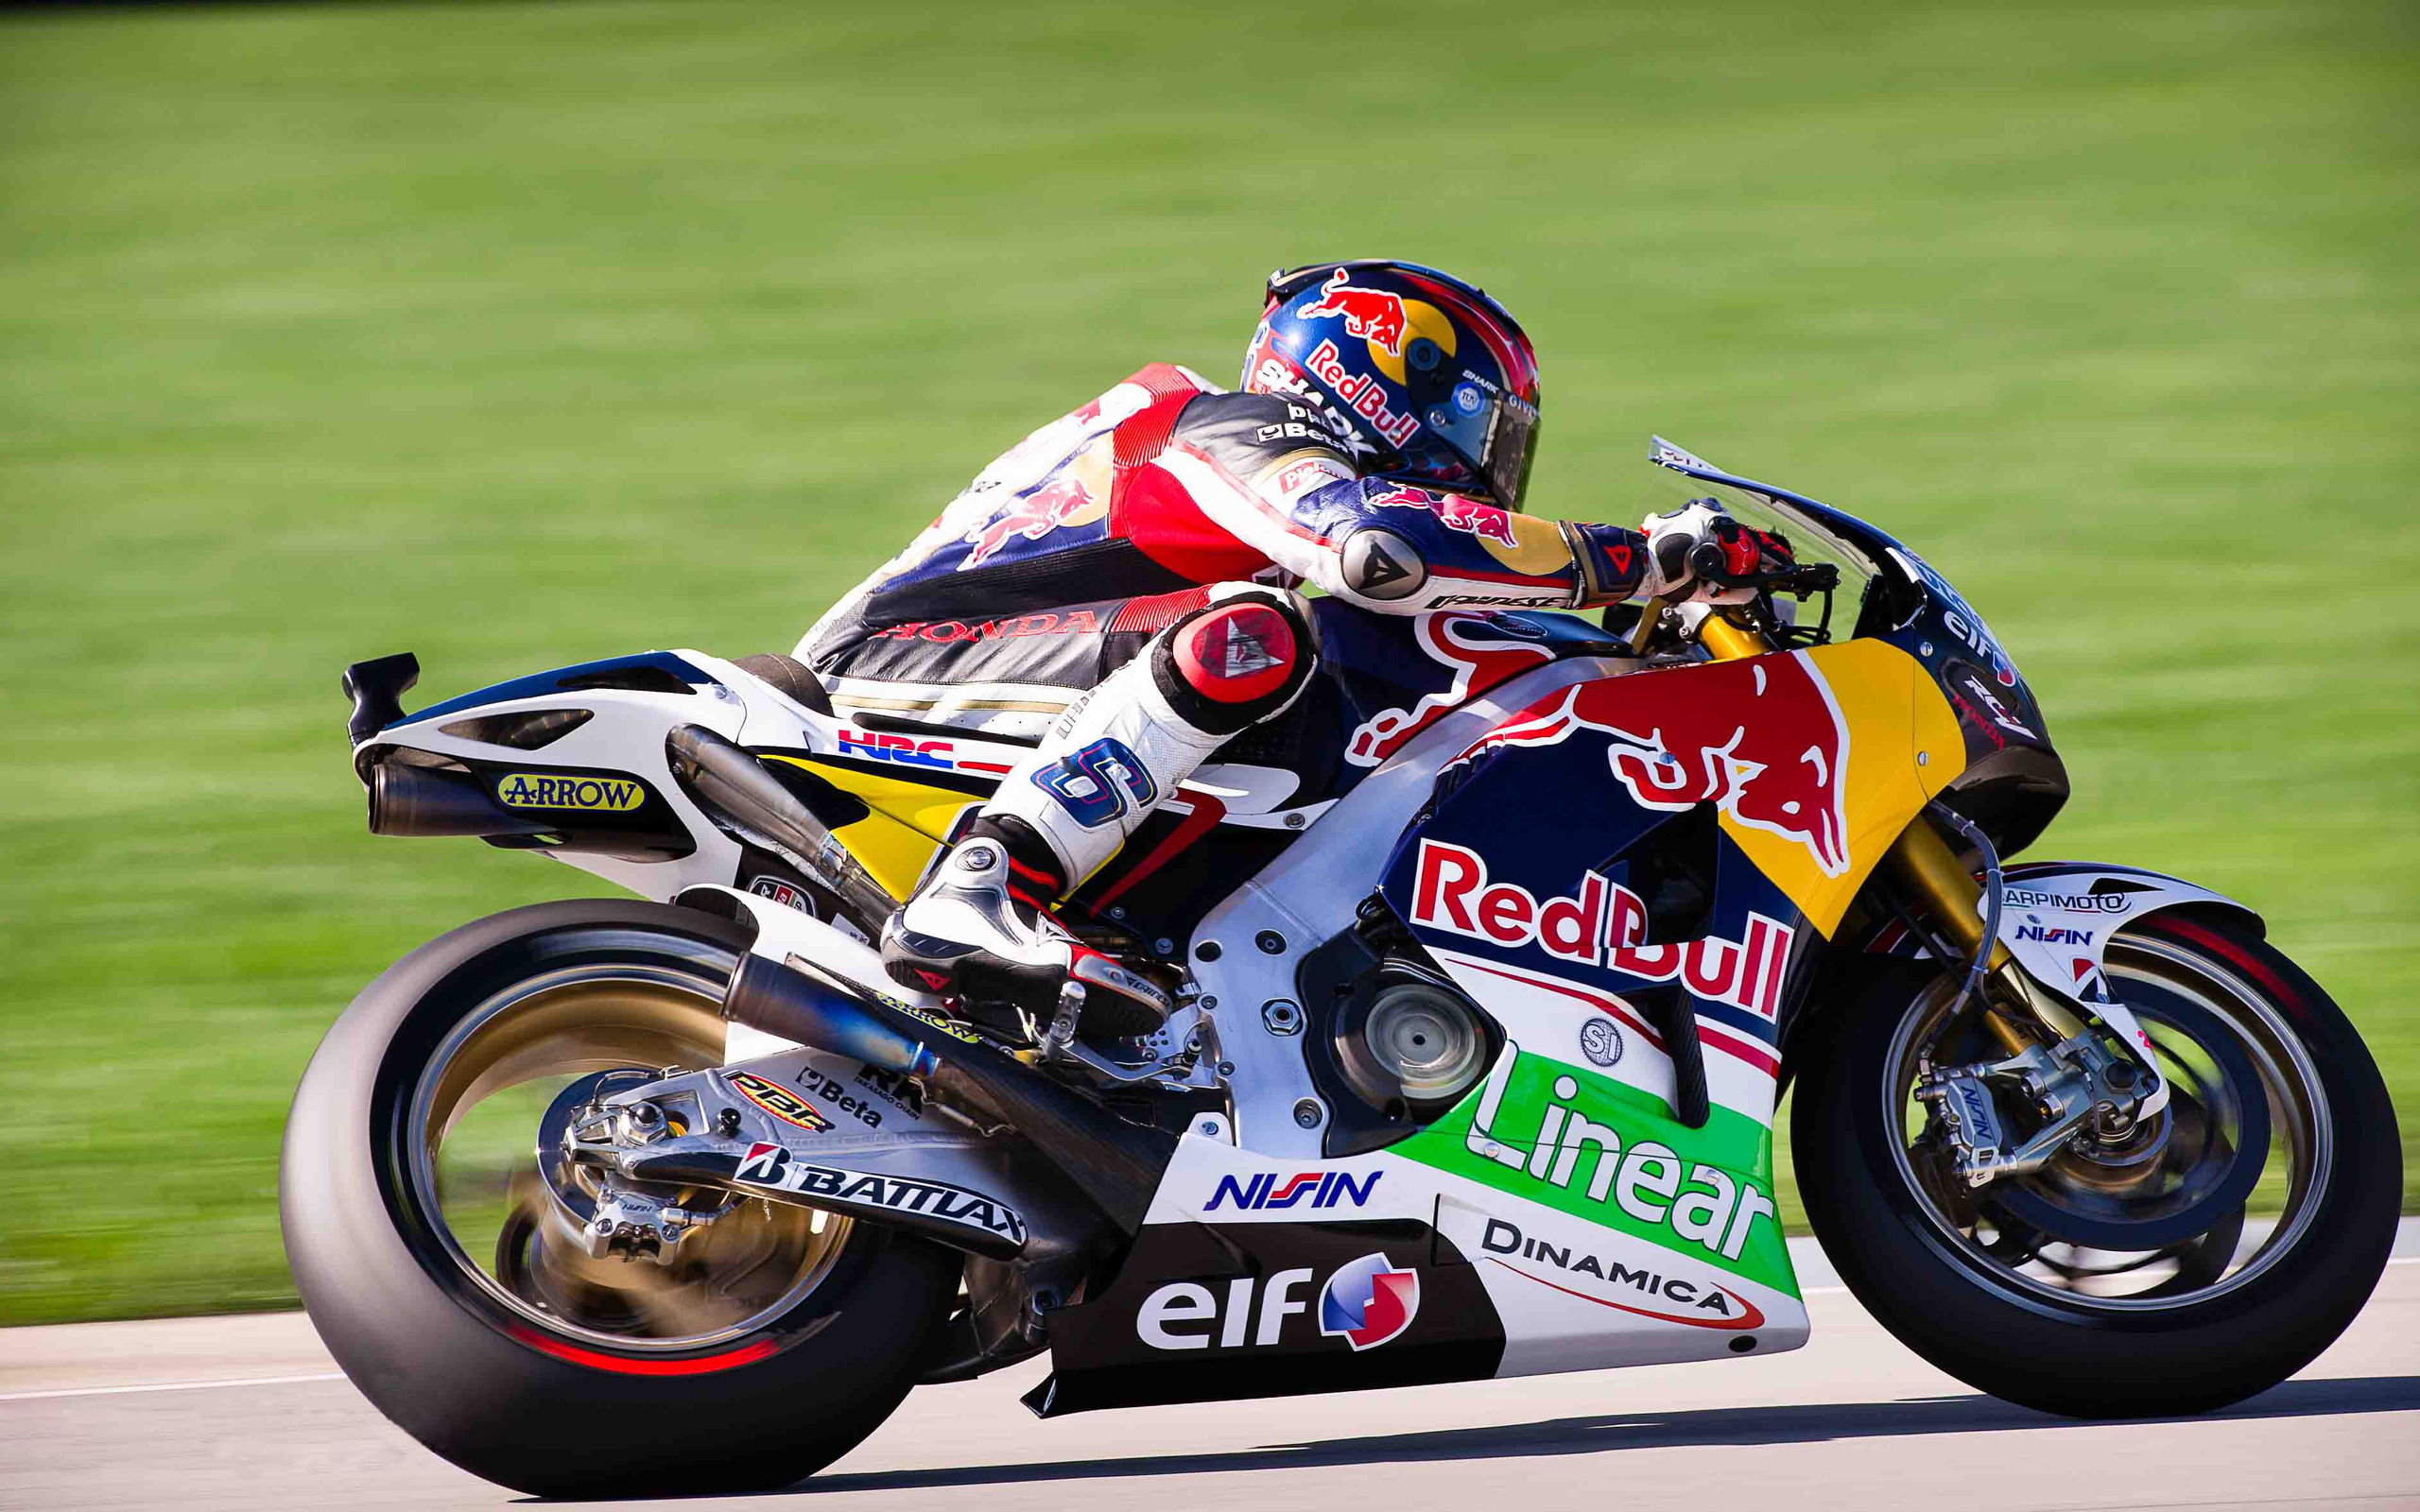 Motorcycle race motogp honda sports red bull racing ...